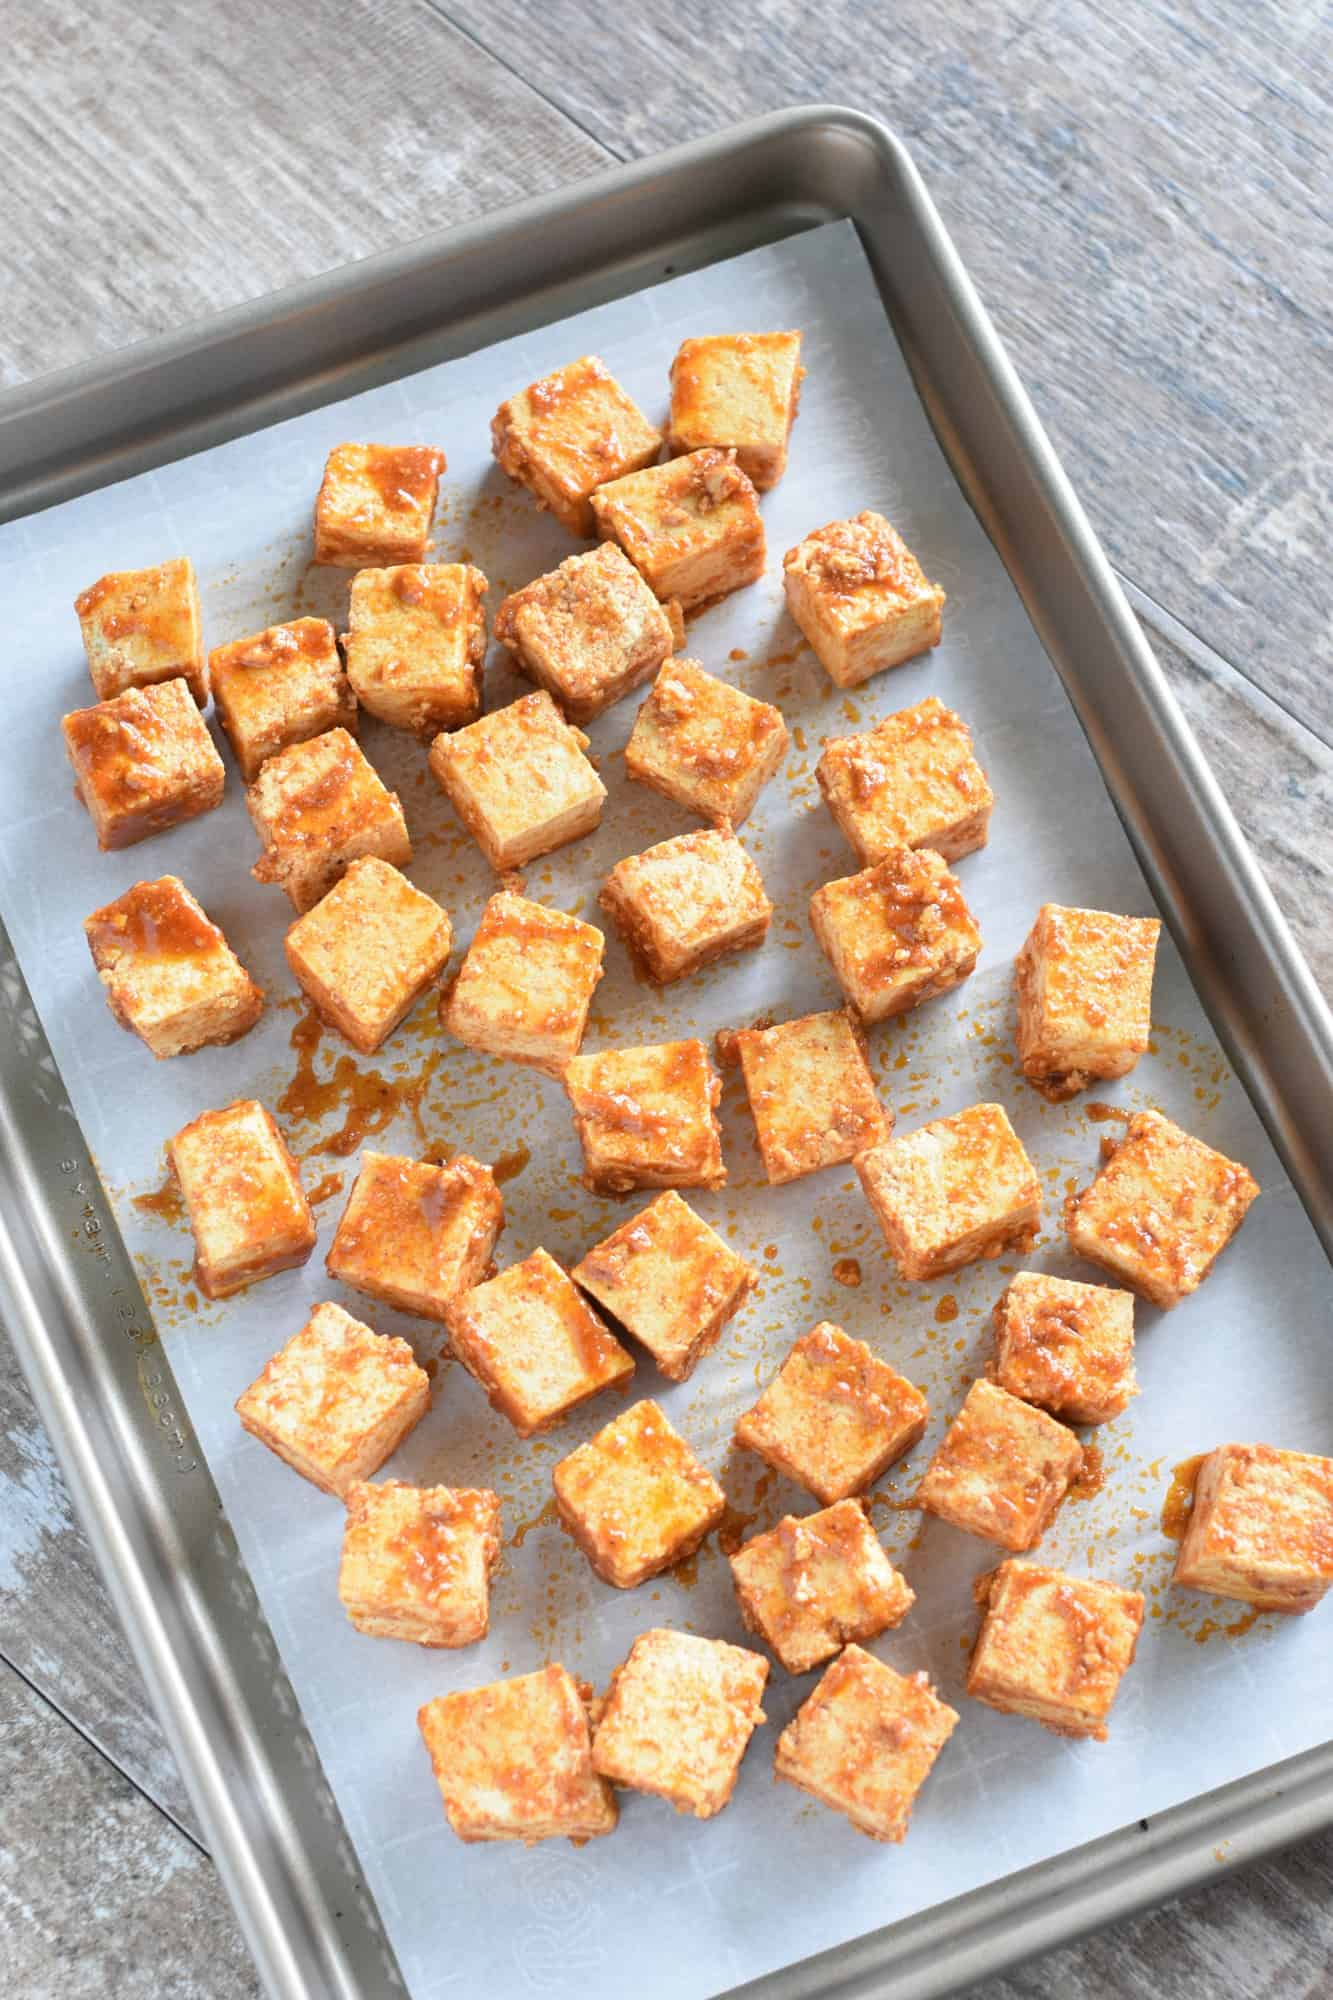 Uncooked tofu pieces on parchment-lined baking sheet